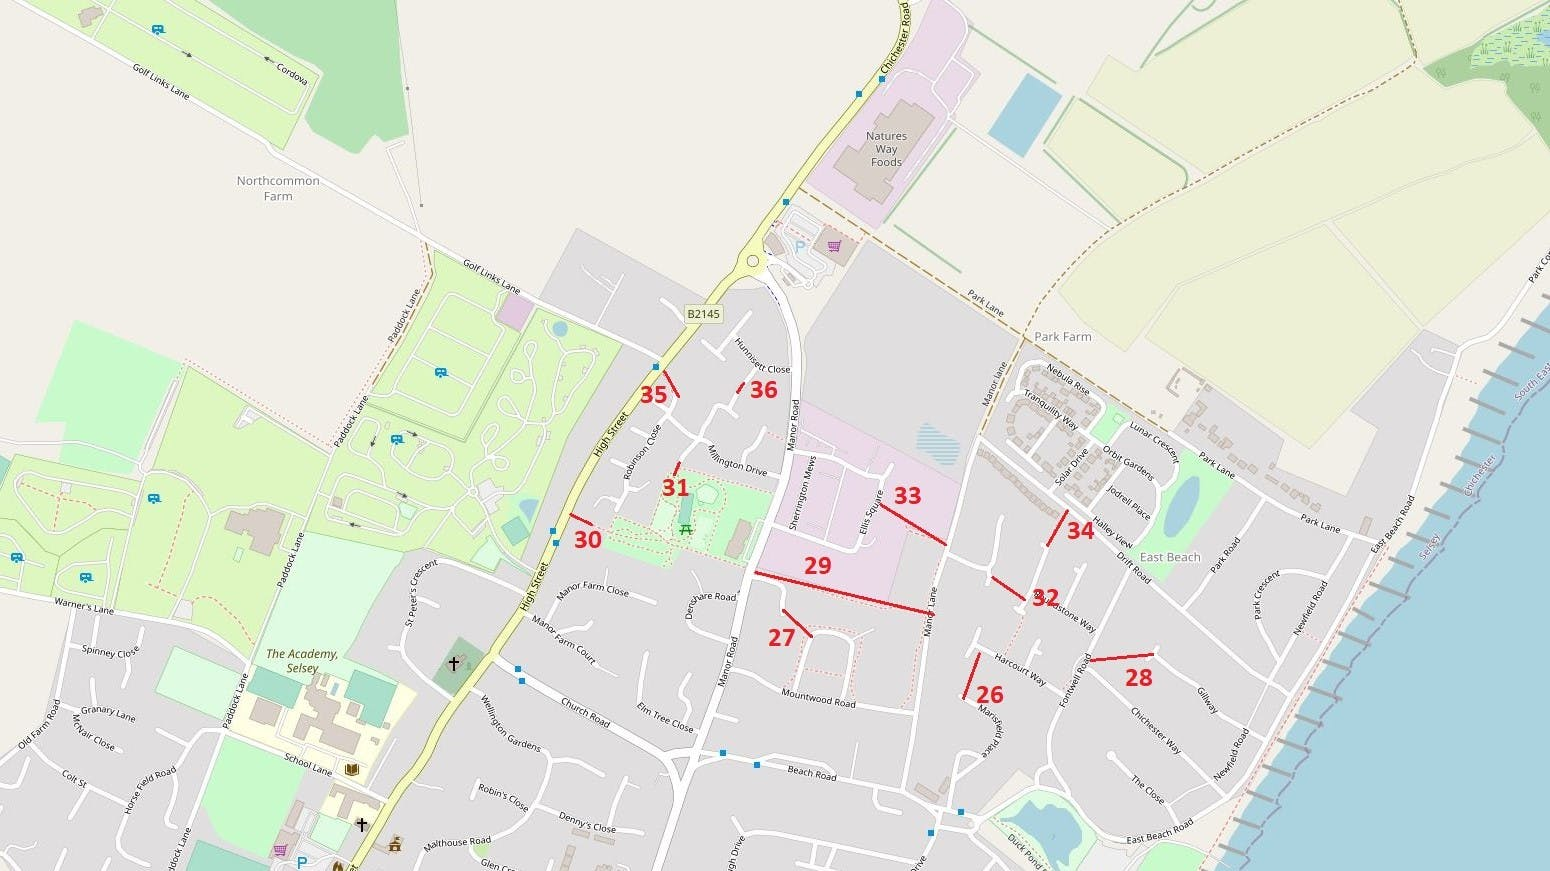 Map showing numbered footpaths in Selsey